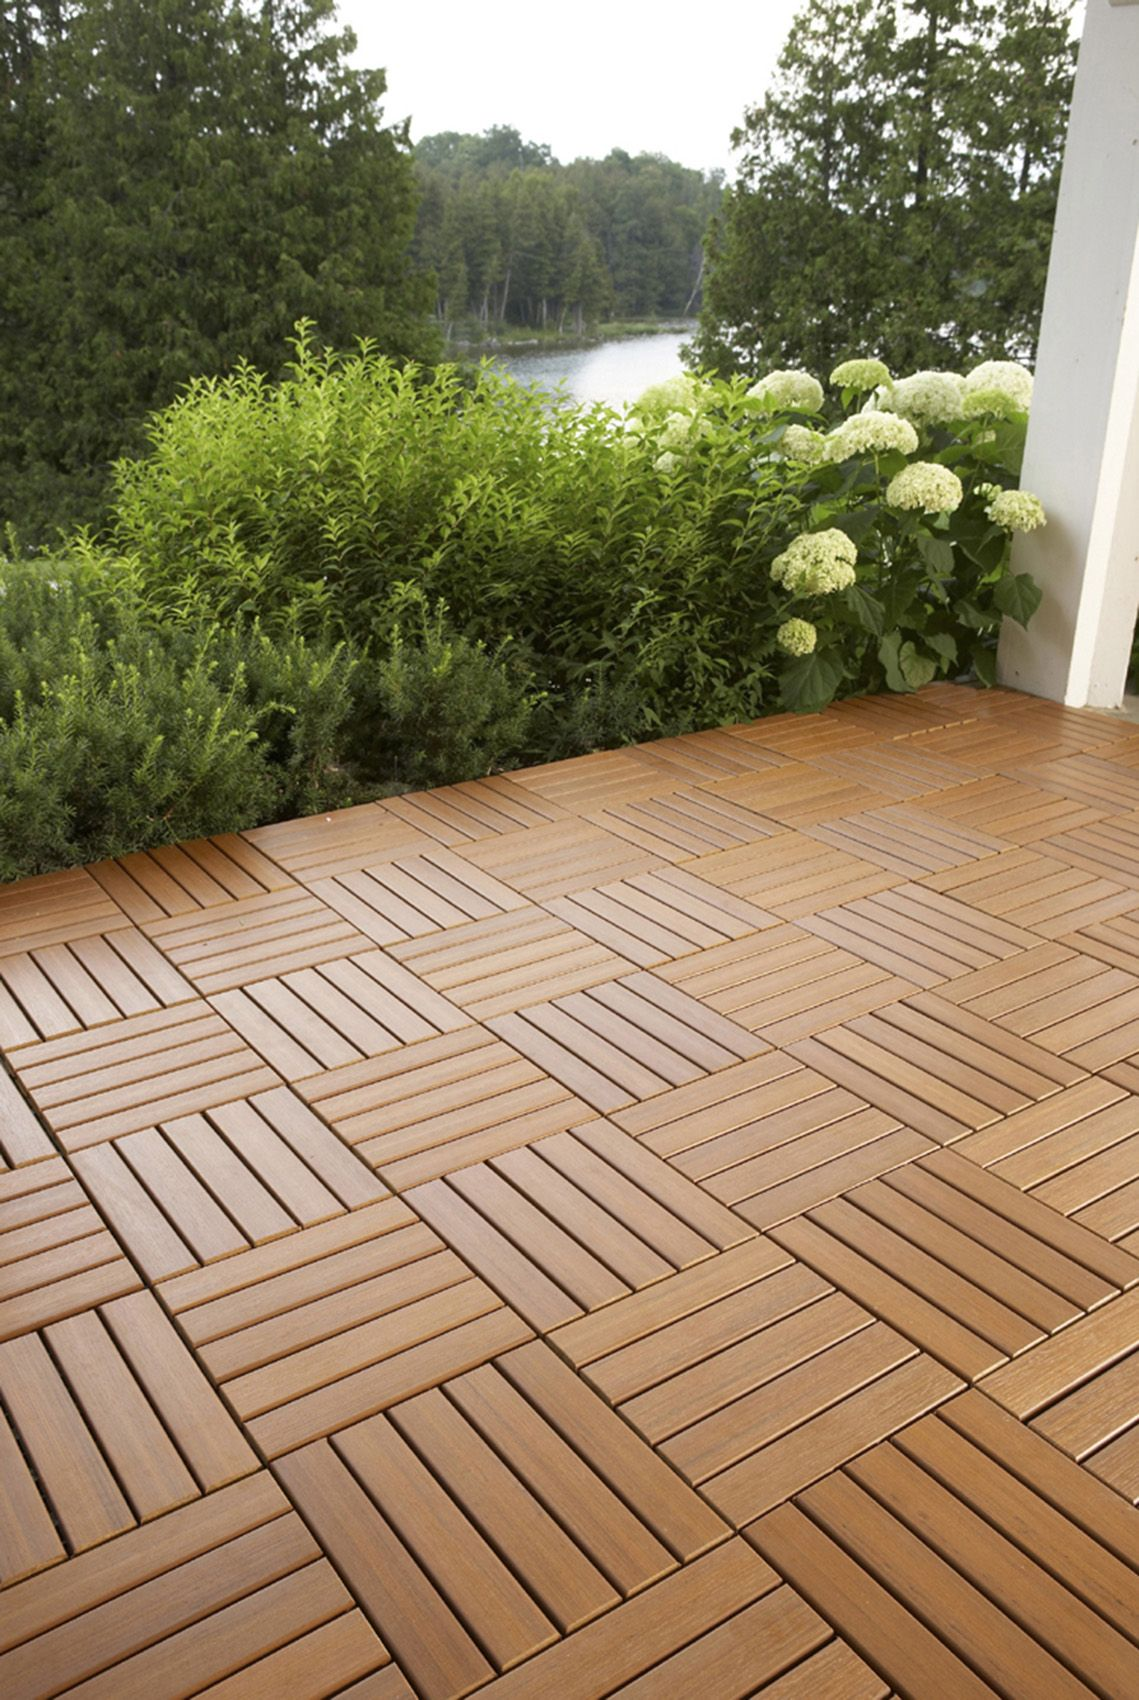 Interlocking Deck Tiles Interlocking Deck Tiles Engineered Polymer Series Patio